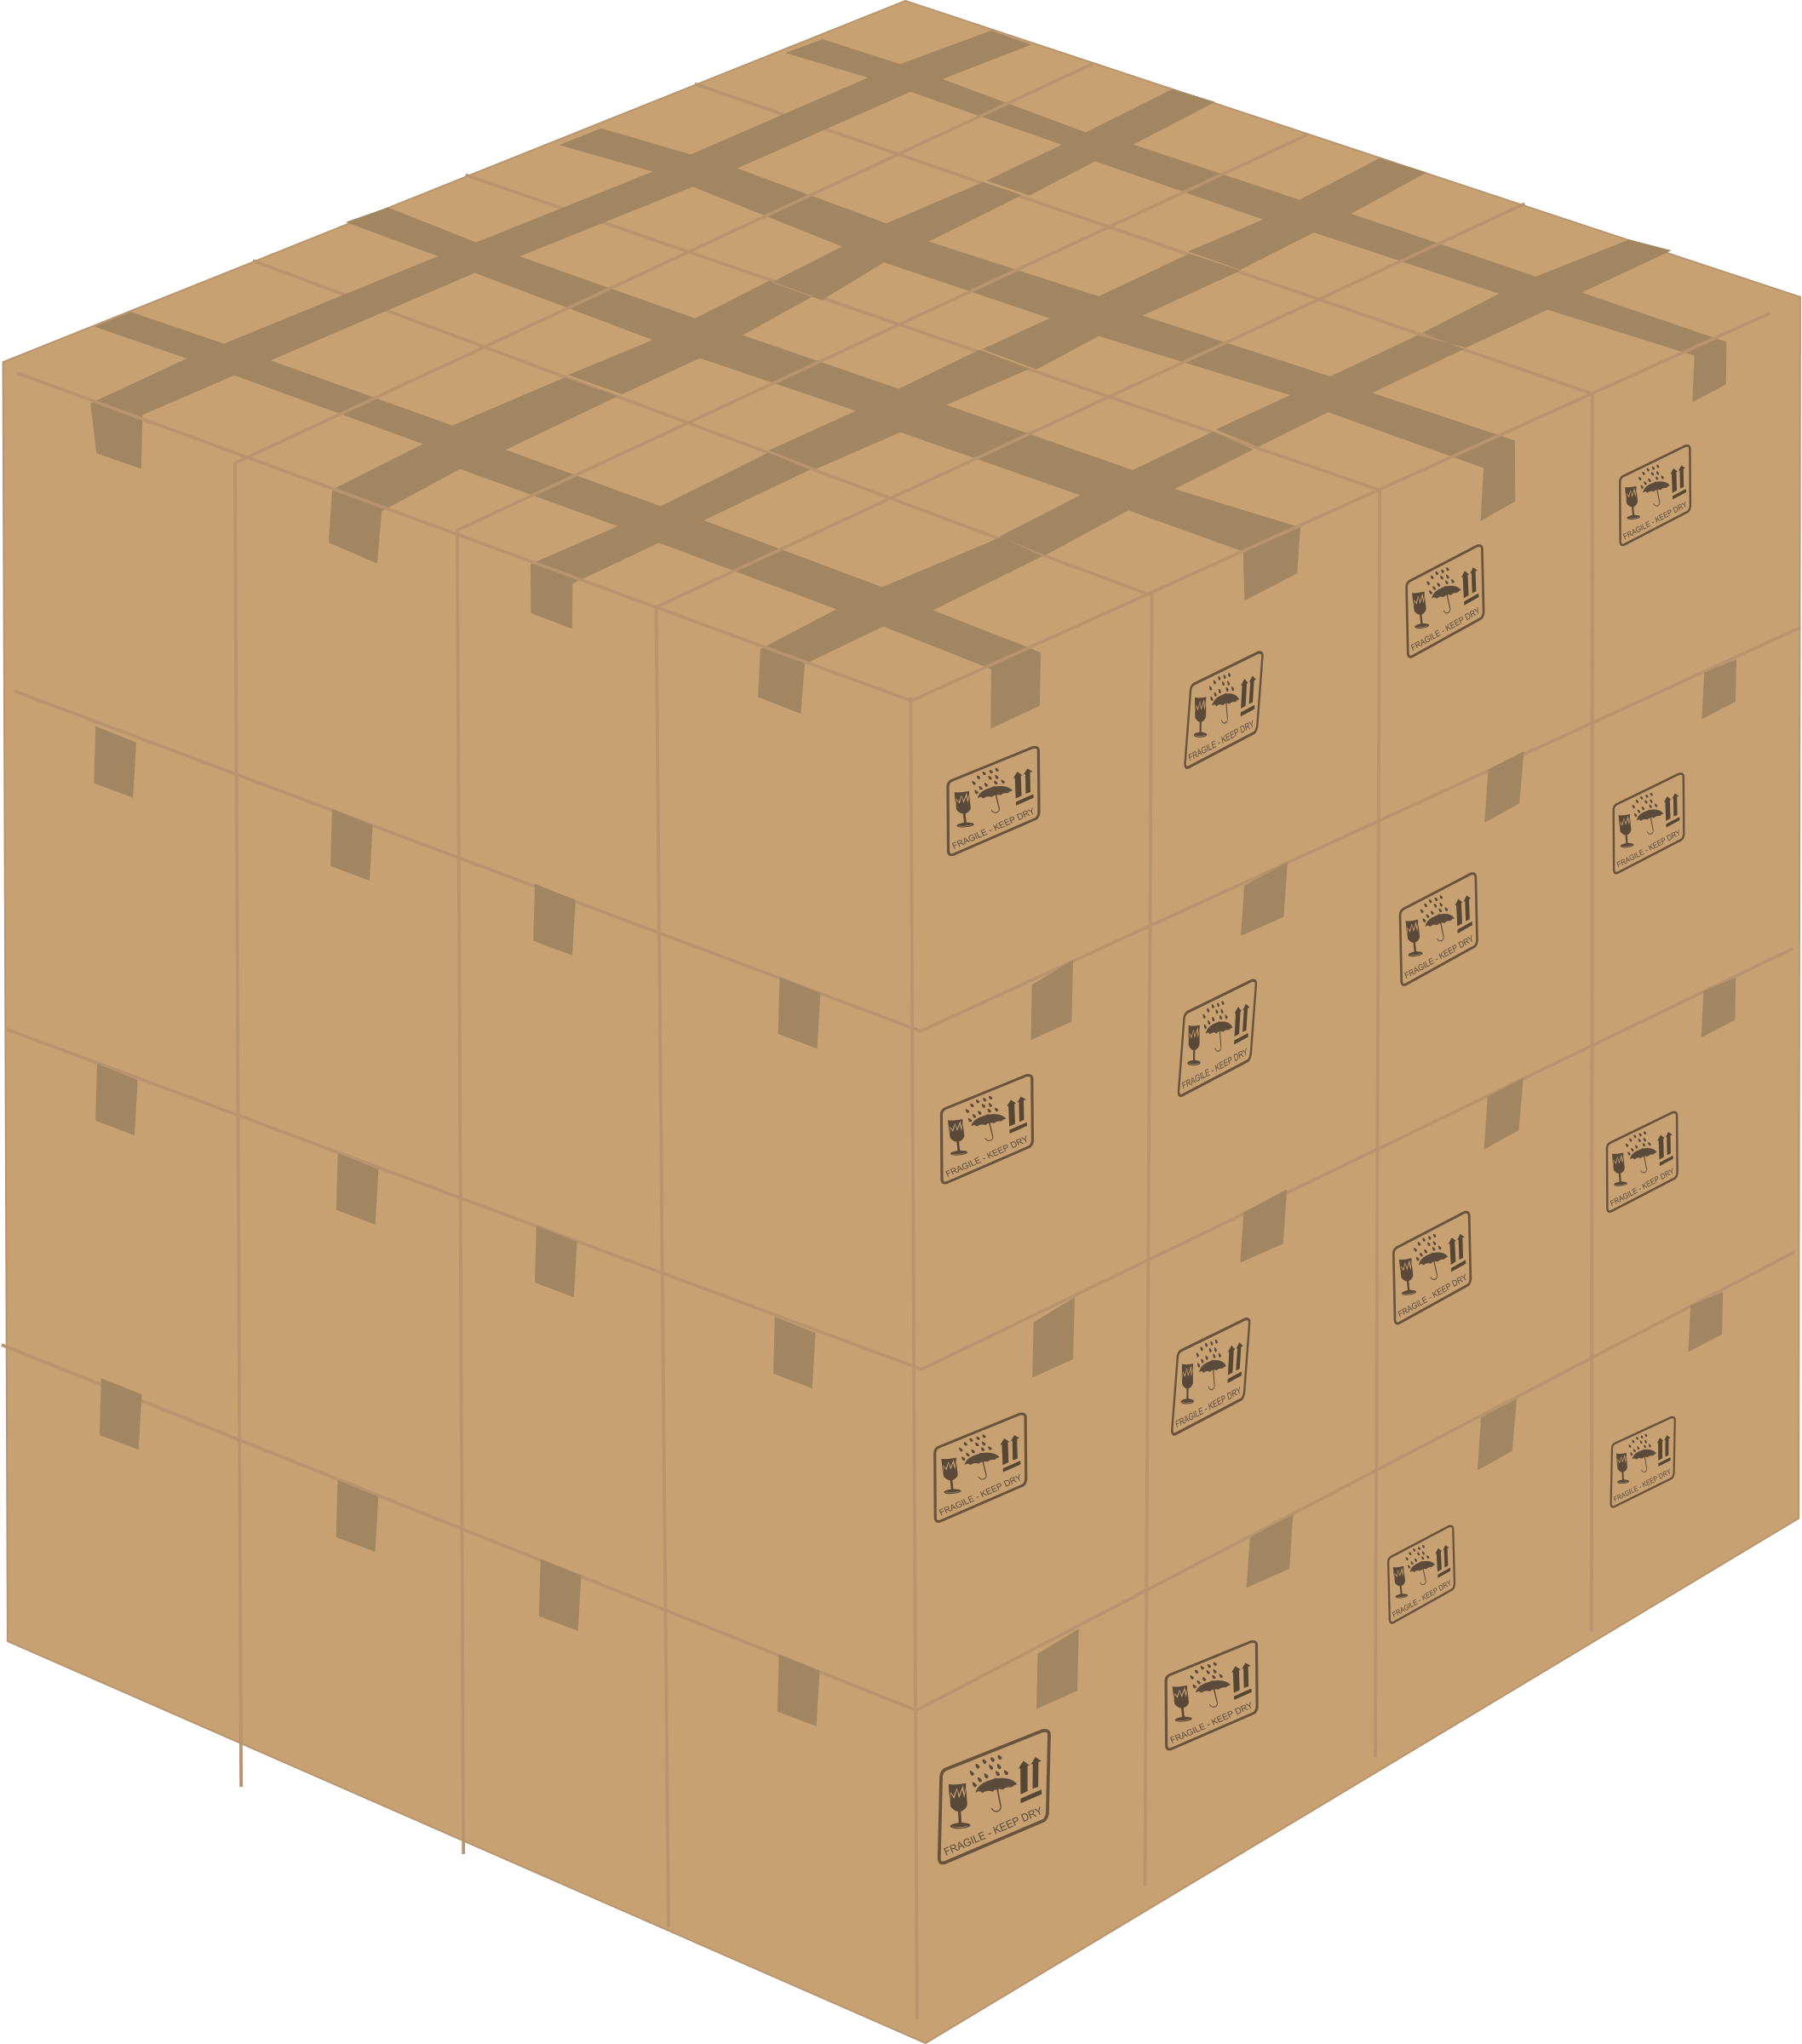 Box cube by Rfc1394